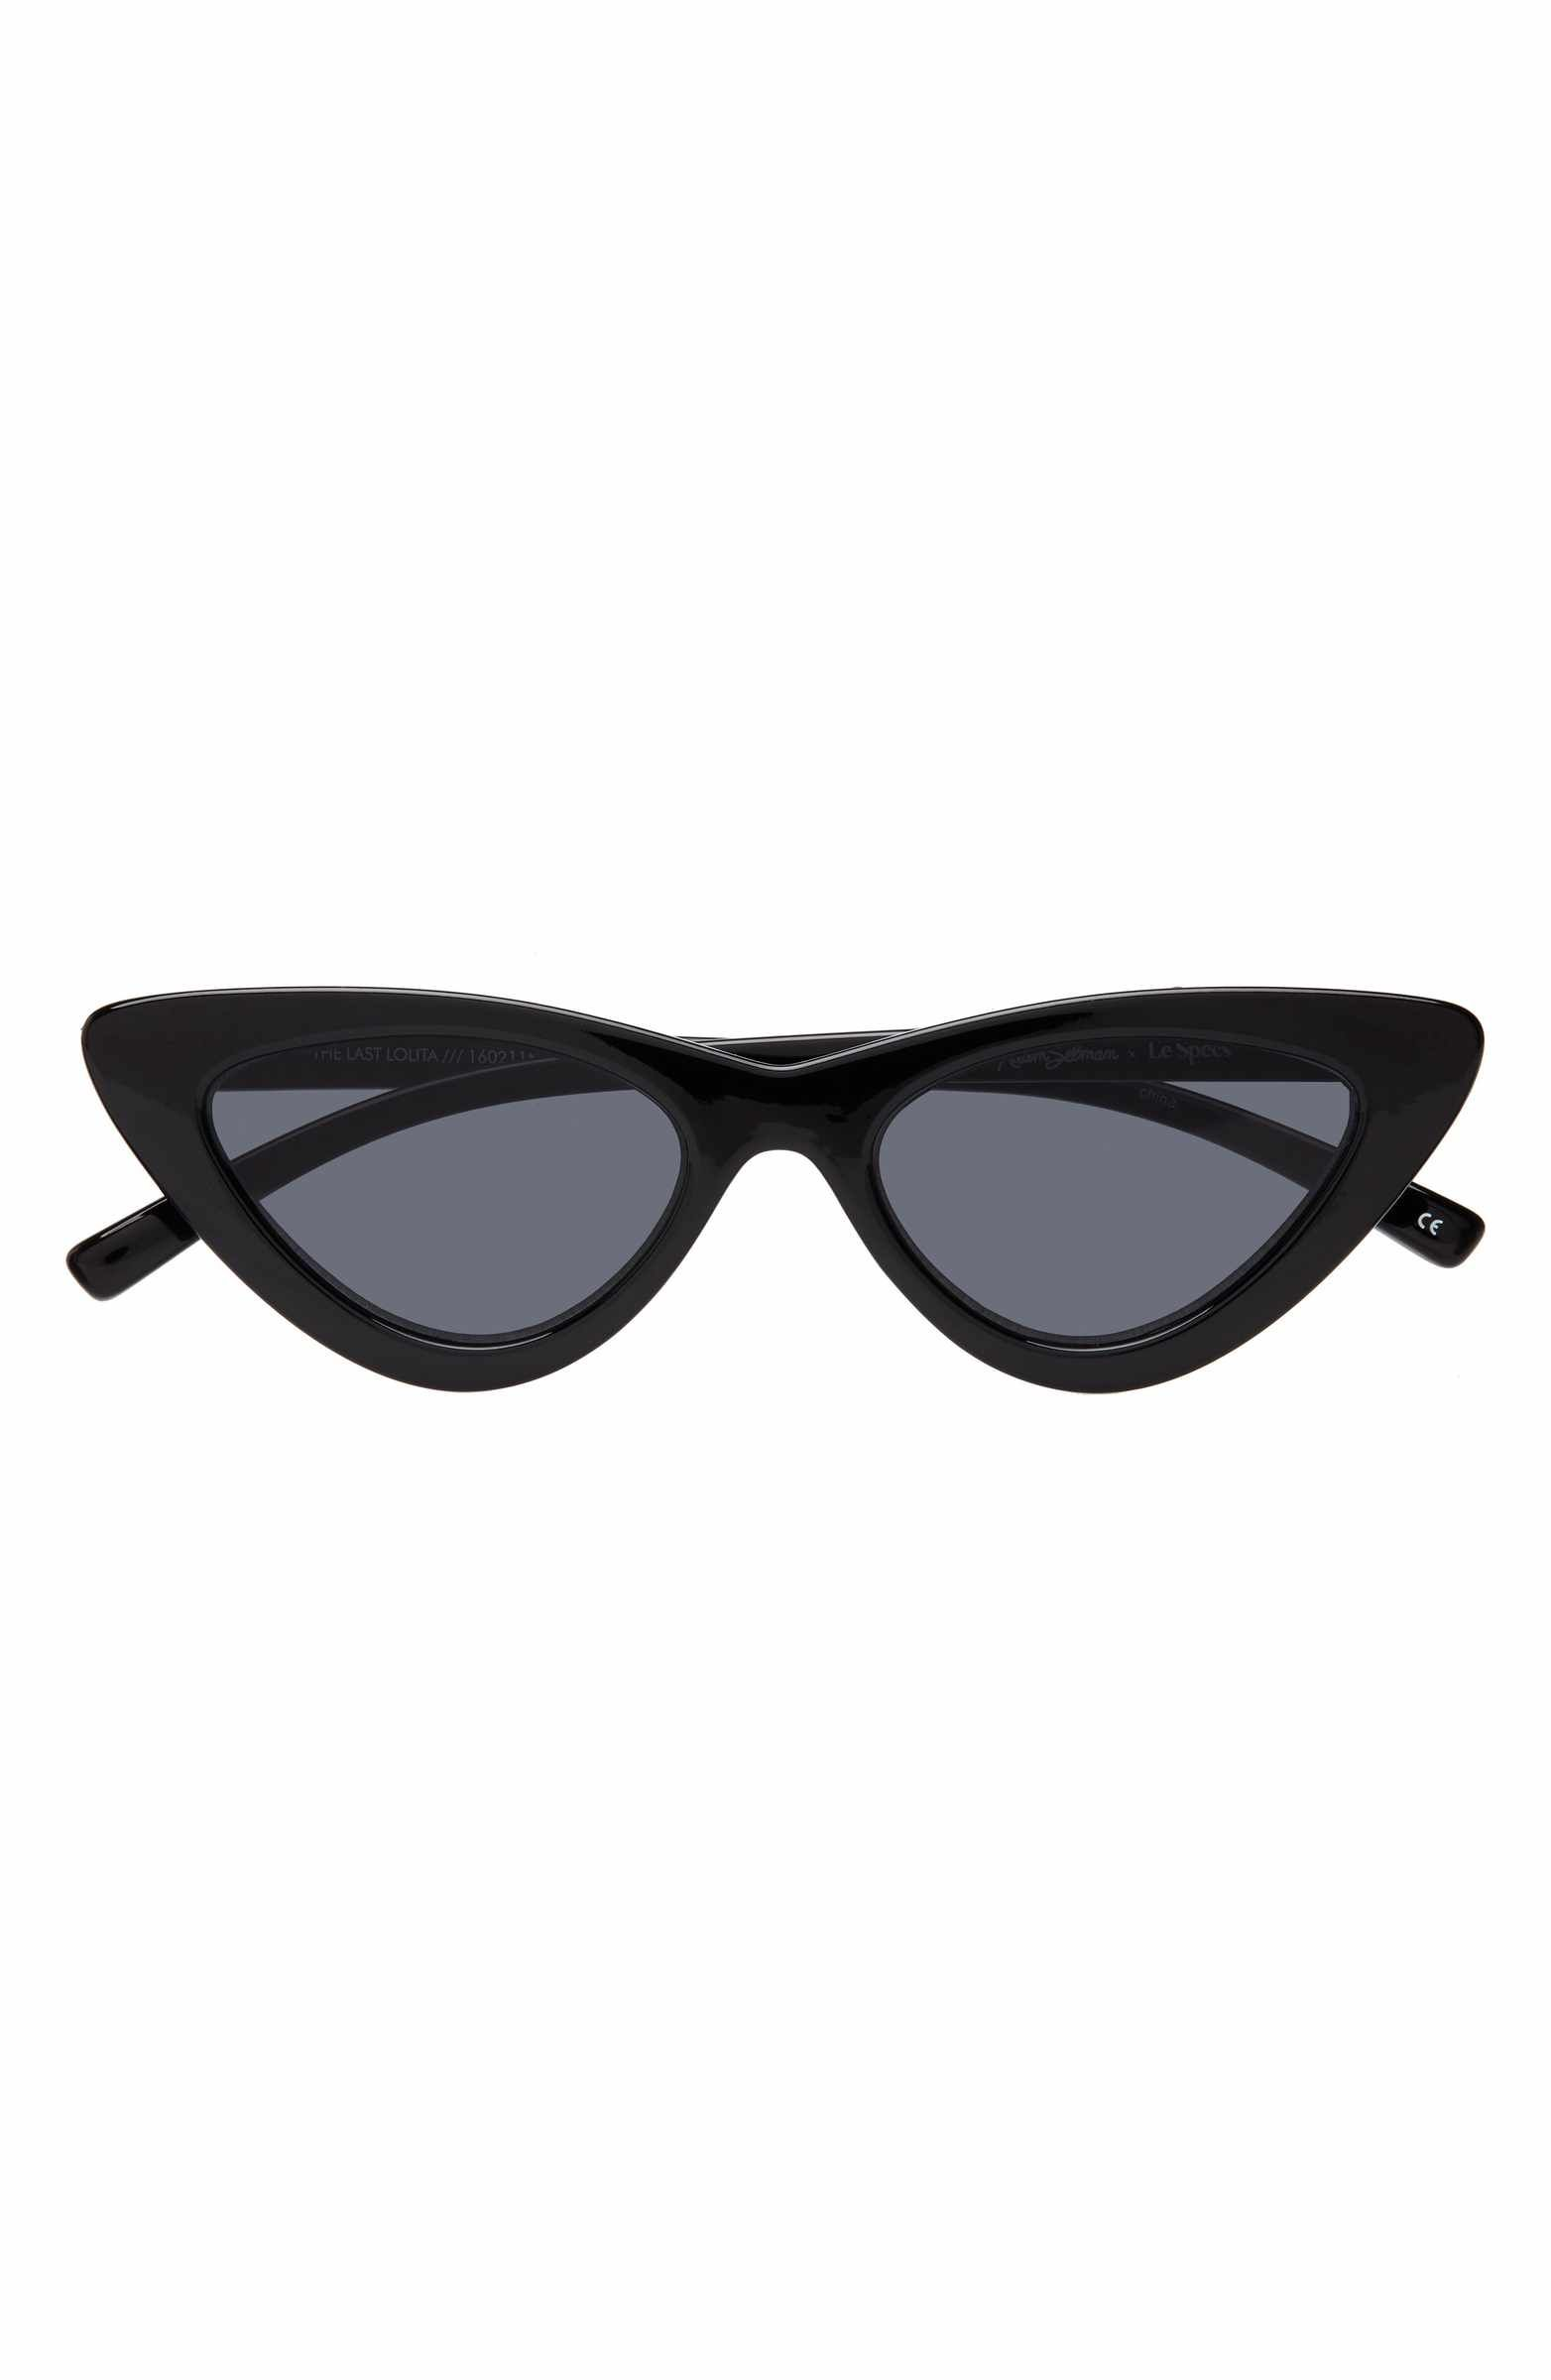 632b5178d9 Main Image - Le Specs x Adam Selman Last Lolita 49mm Cat Eye ...